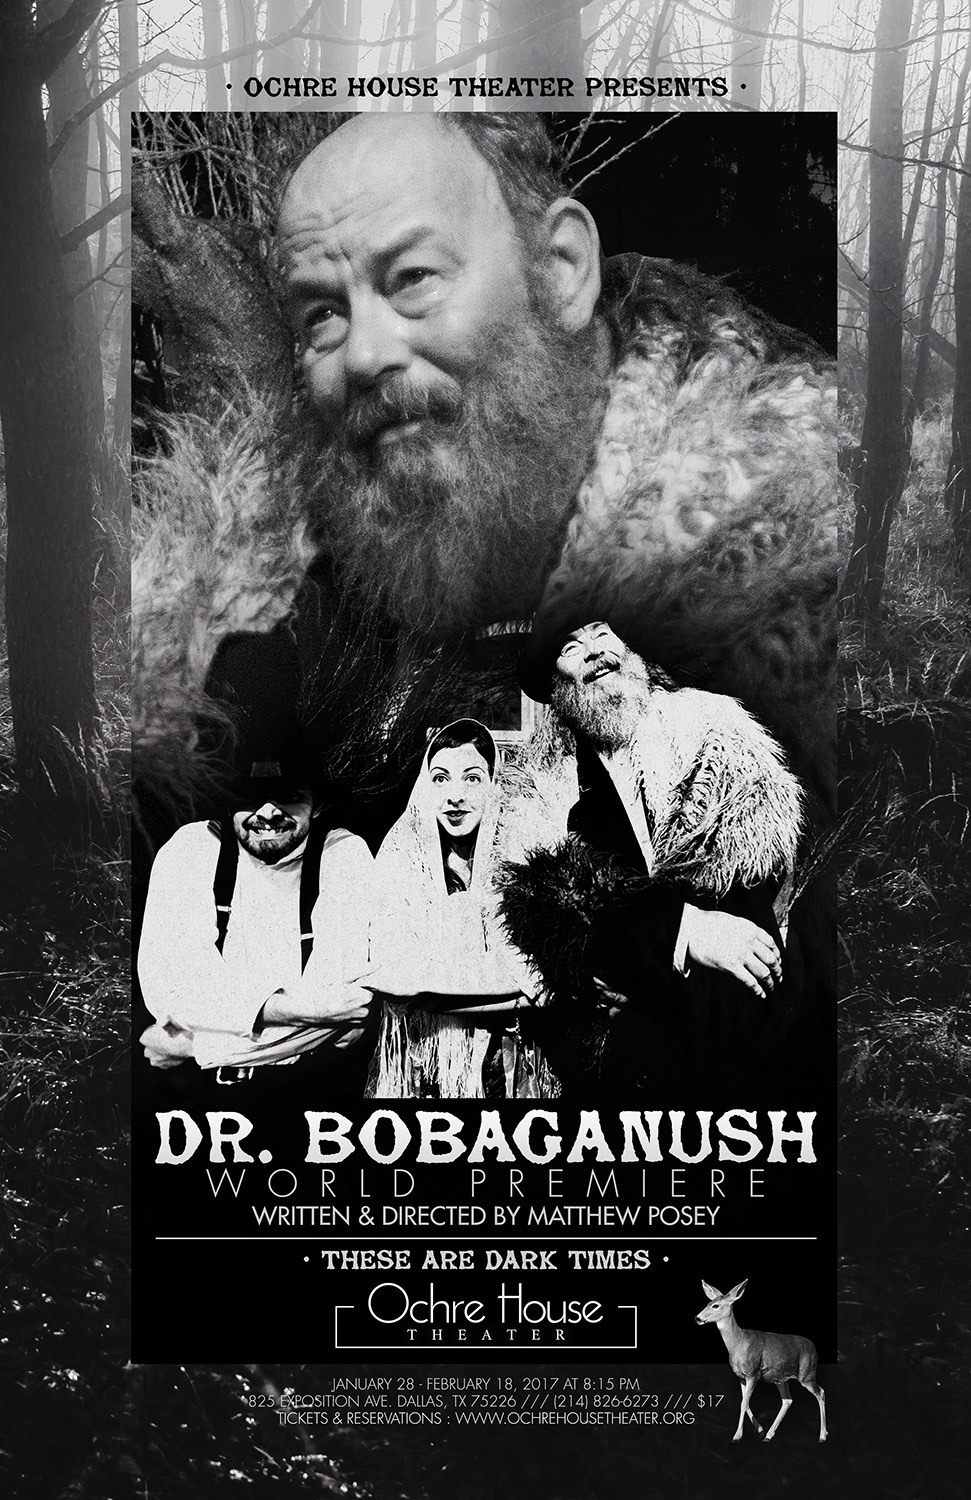 Ochre House Theater Presents DR. BOBAGANUSH, written and directed by Matthew Posey